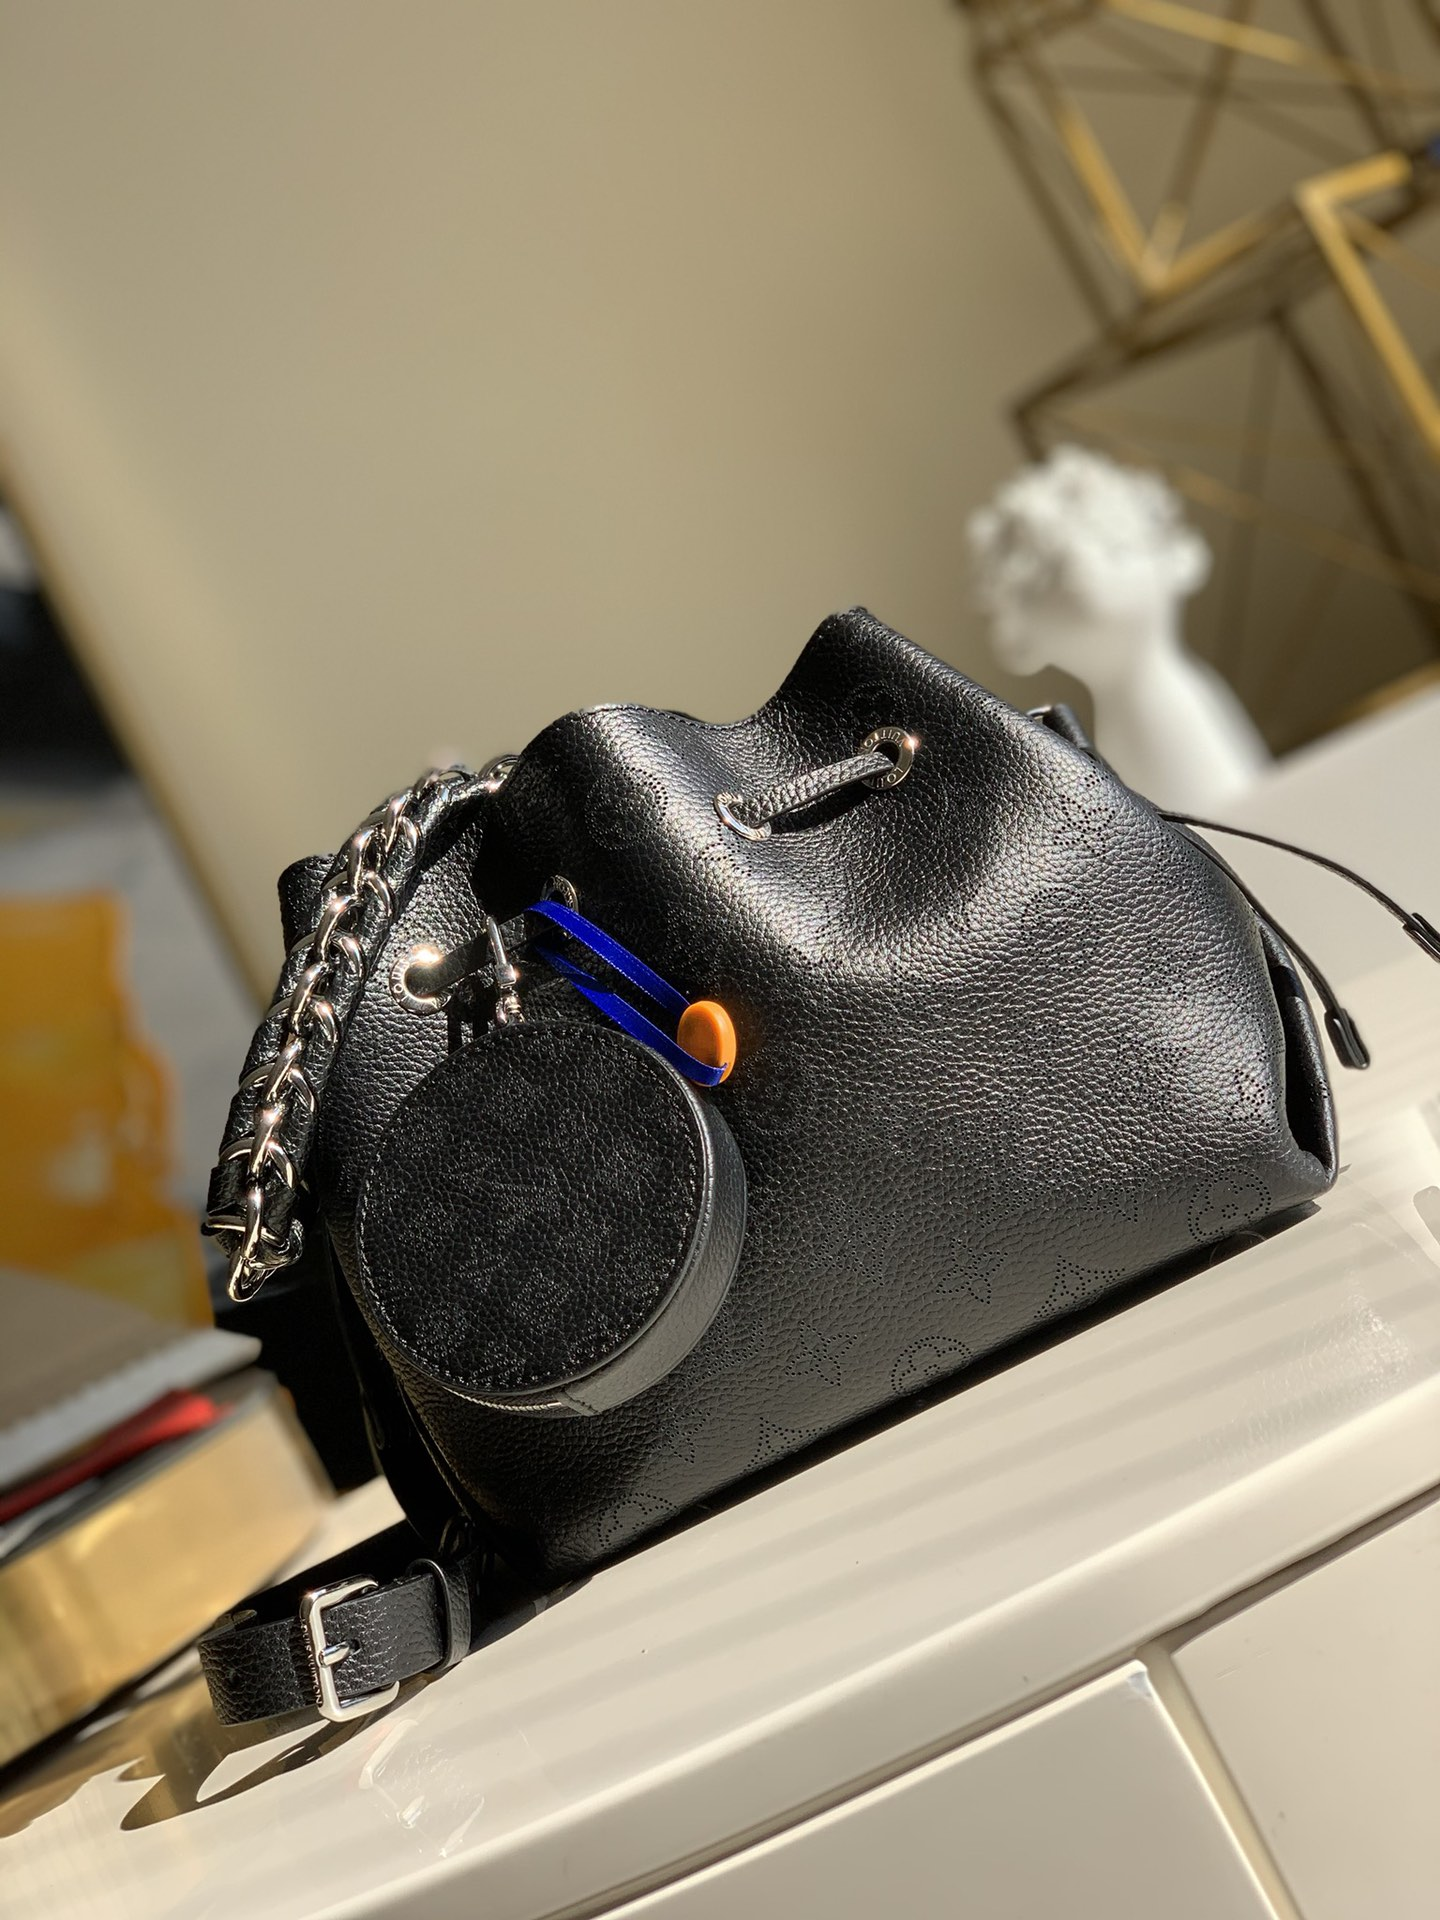 Replica Louis Vuitton M57070  Bella Bucket Bag in Mahina Calf Leather wite Perforated Monogram Pattern Black